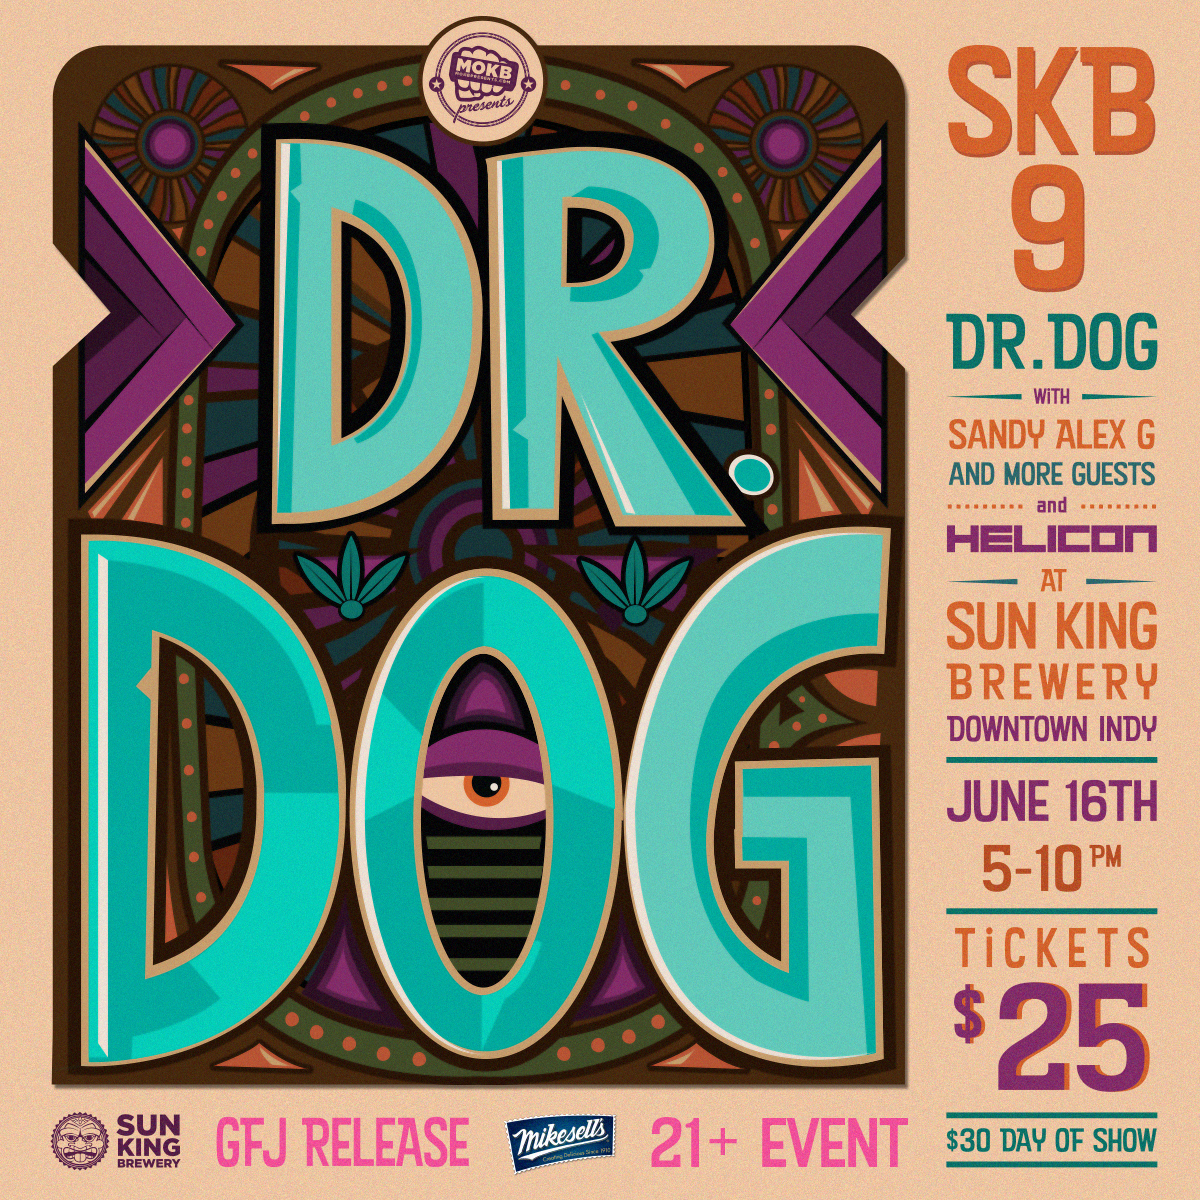 Nine Years of Beer by Sun King Brewery (feat. Dr. Dog) | Edible Indy